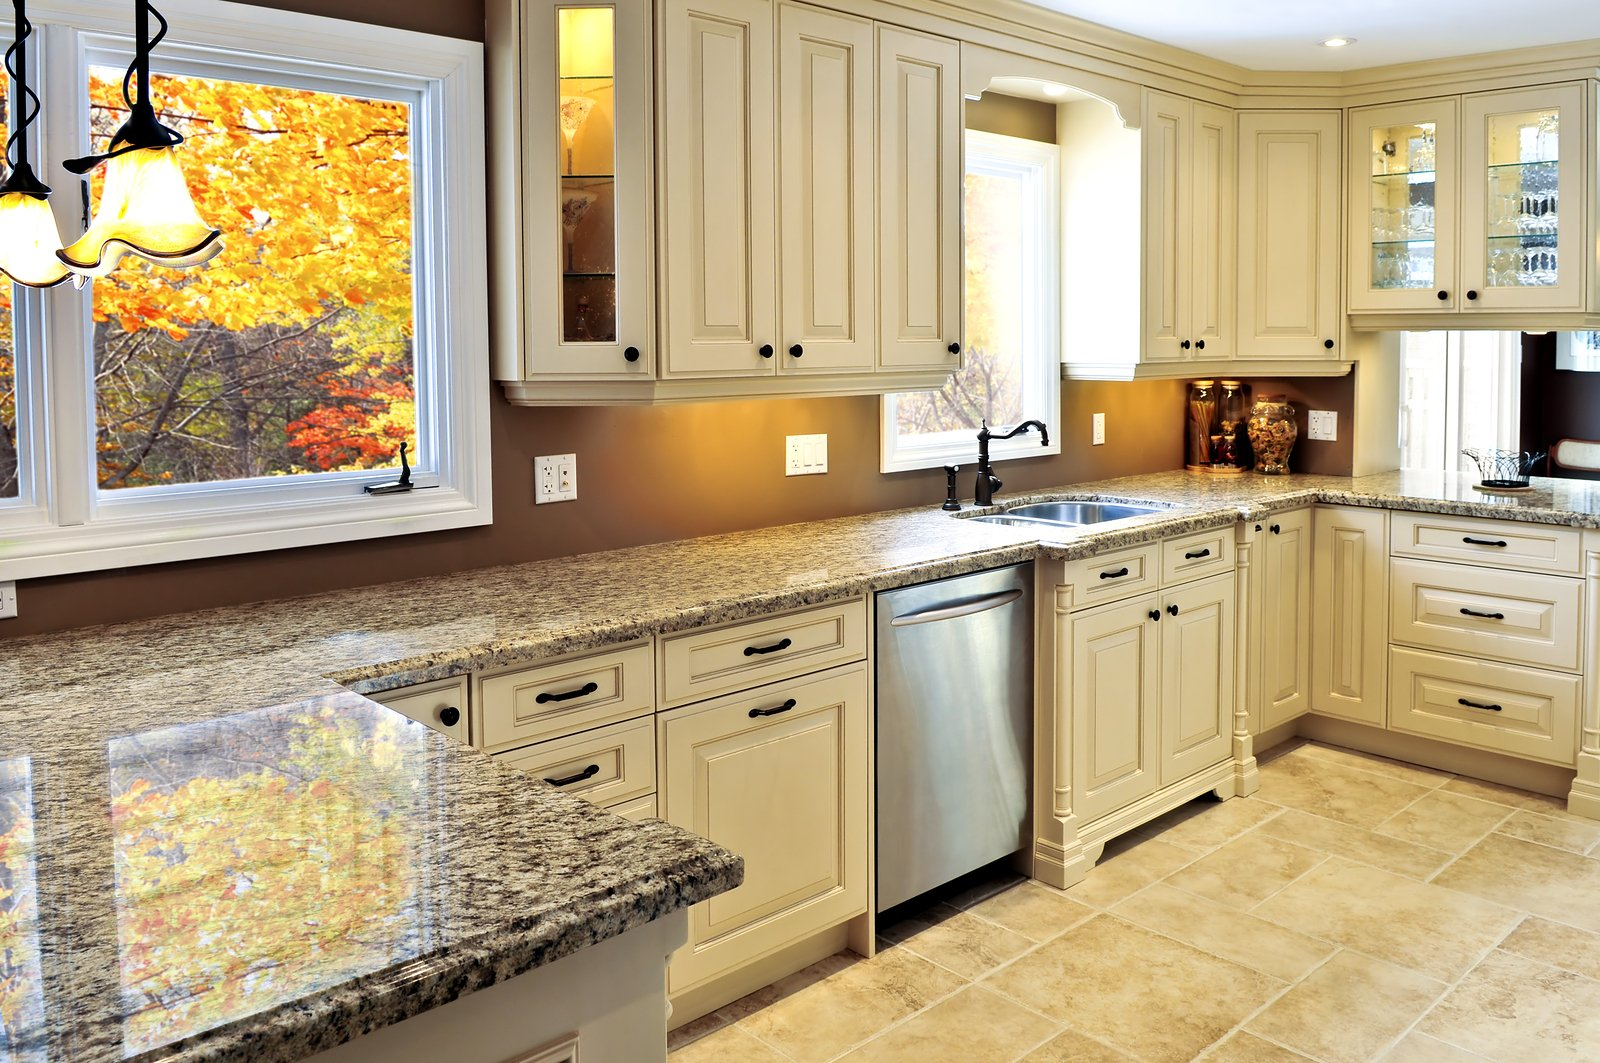 Let our expertise help you define your kitchen's style